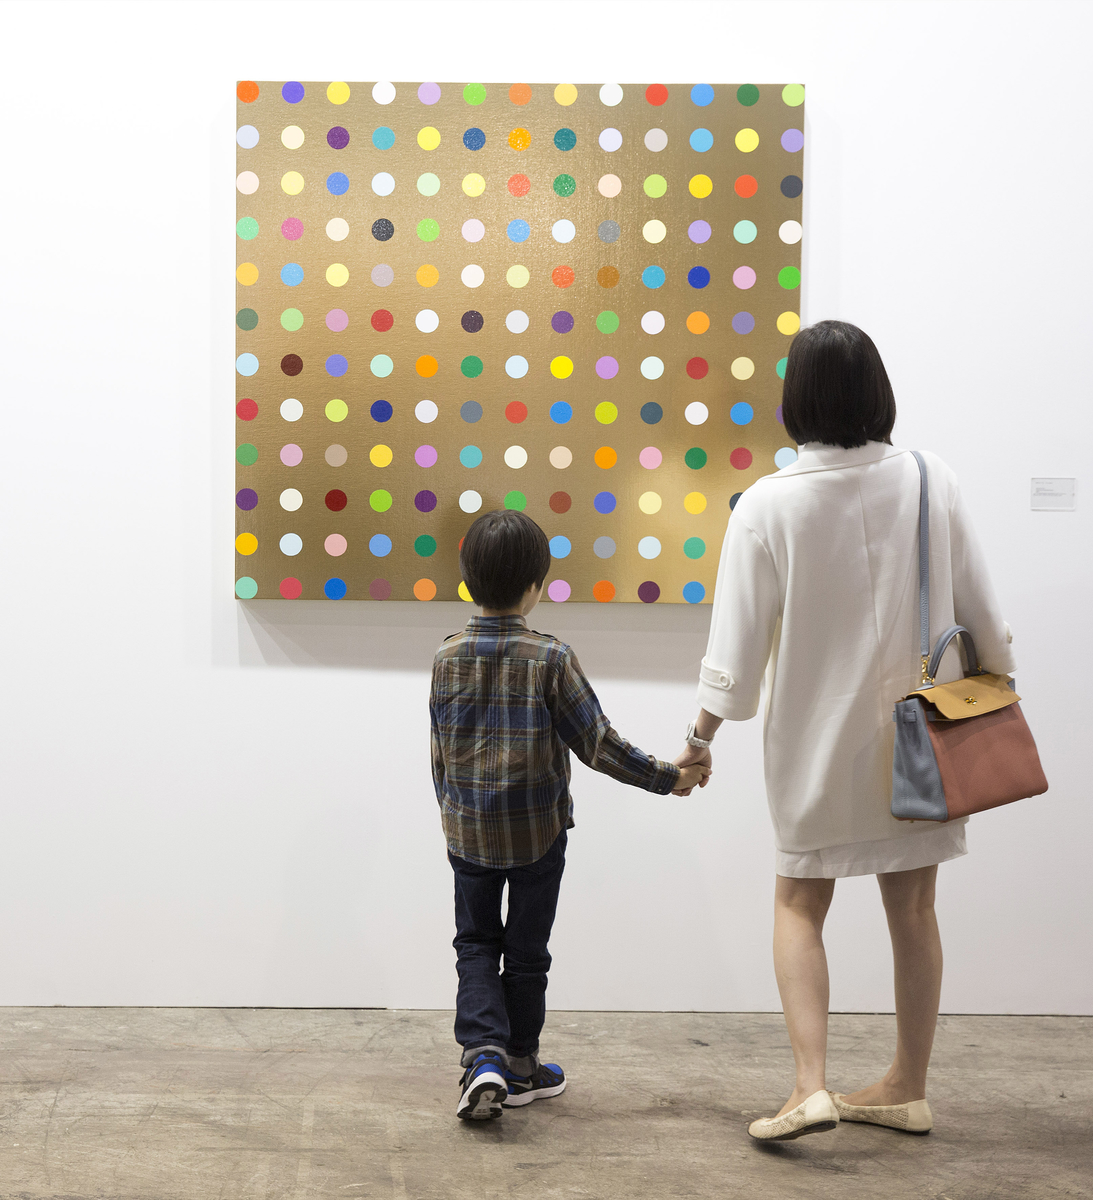 White Cube's booth at the fair this year, with a Damien Hirst spot painting